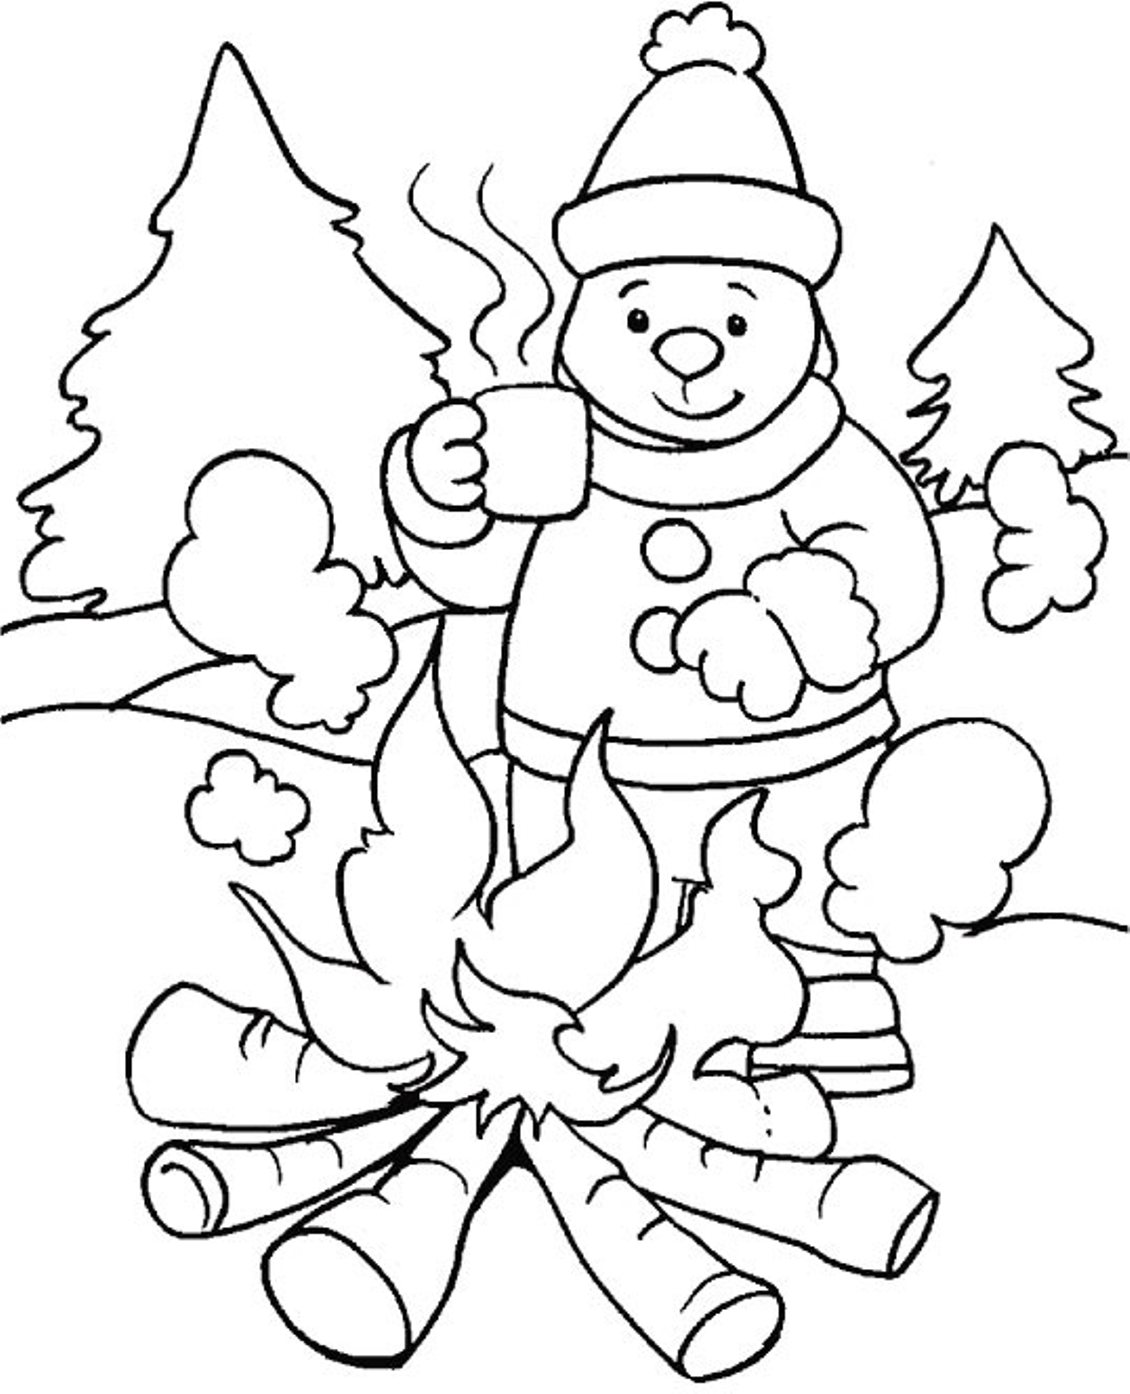 winter activities coloring pages | Free Printable Winter Coloring Pages For Kids